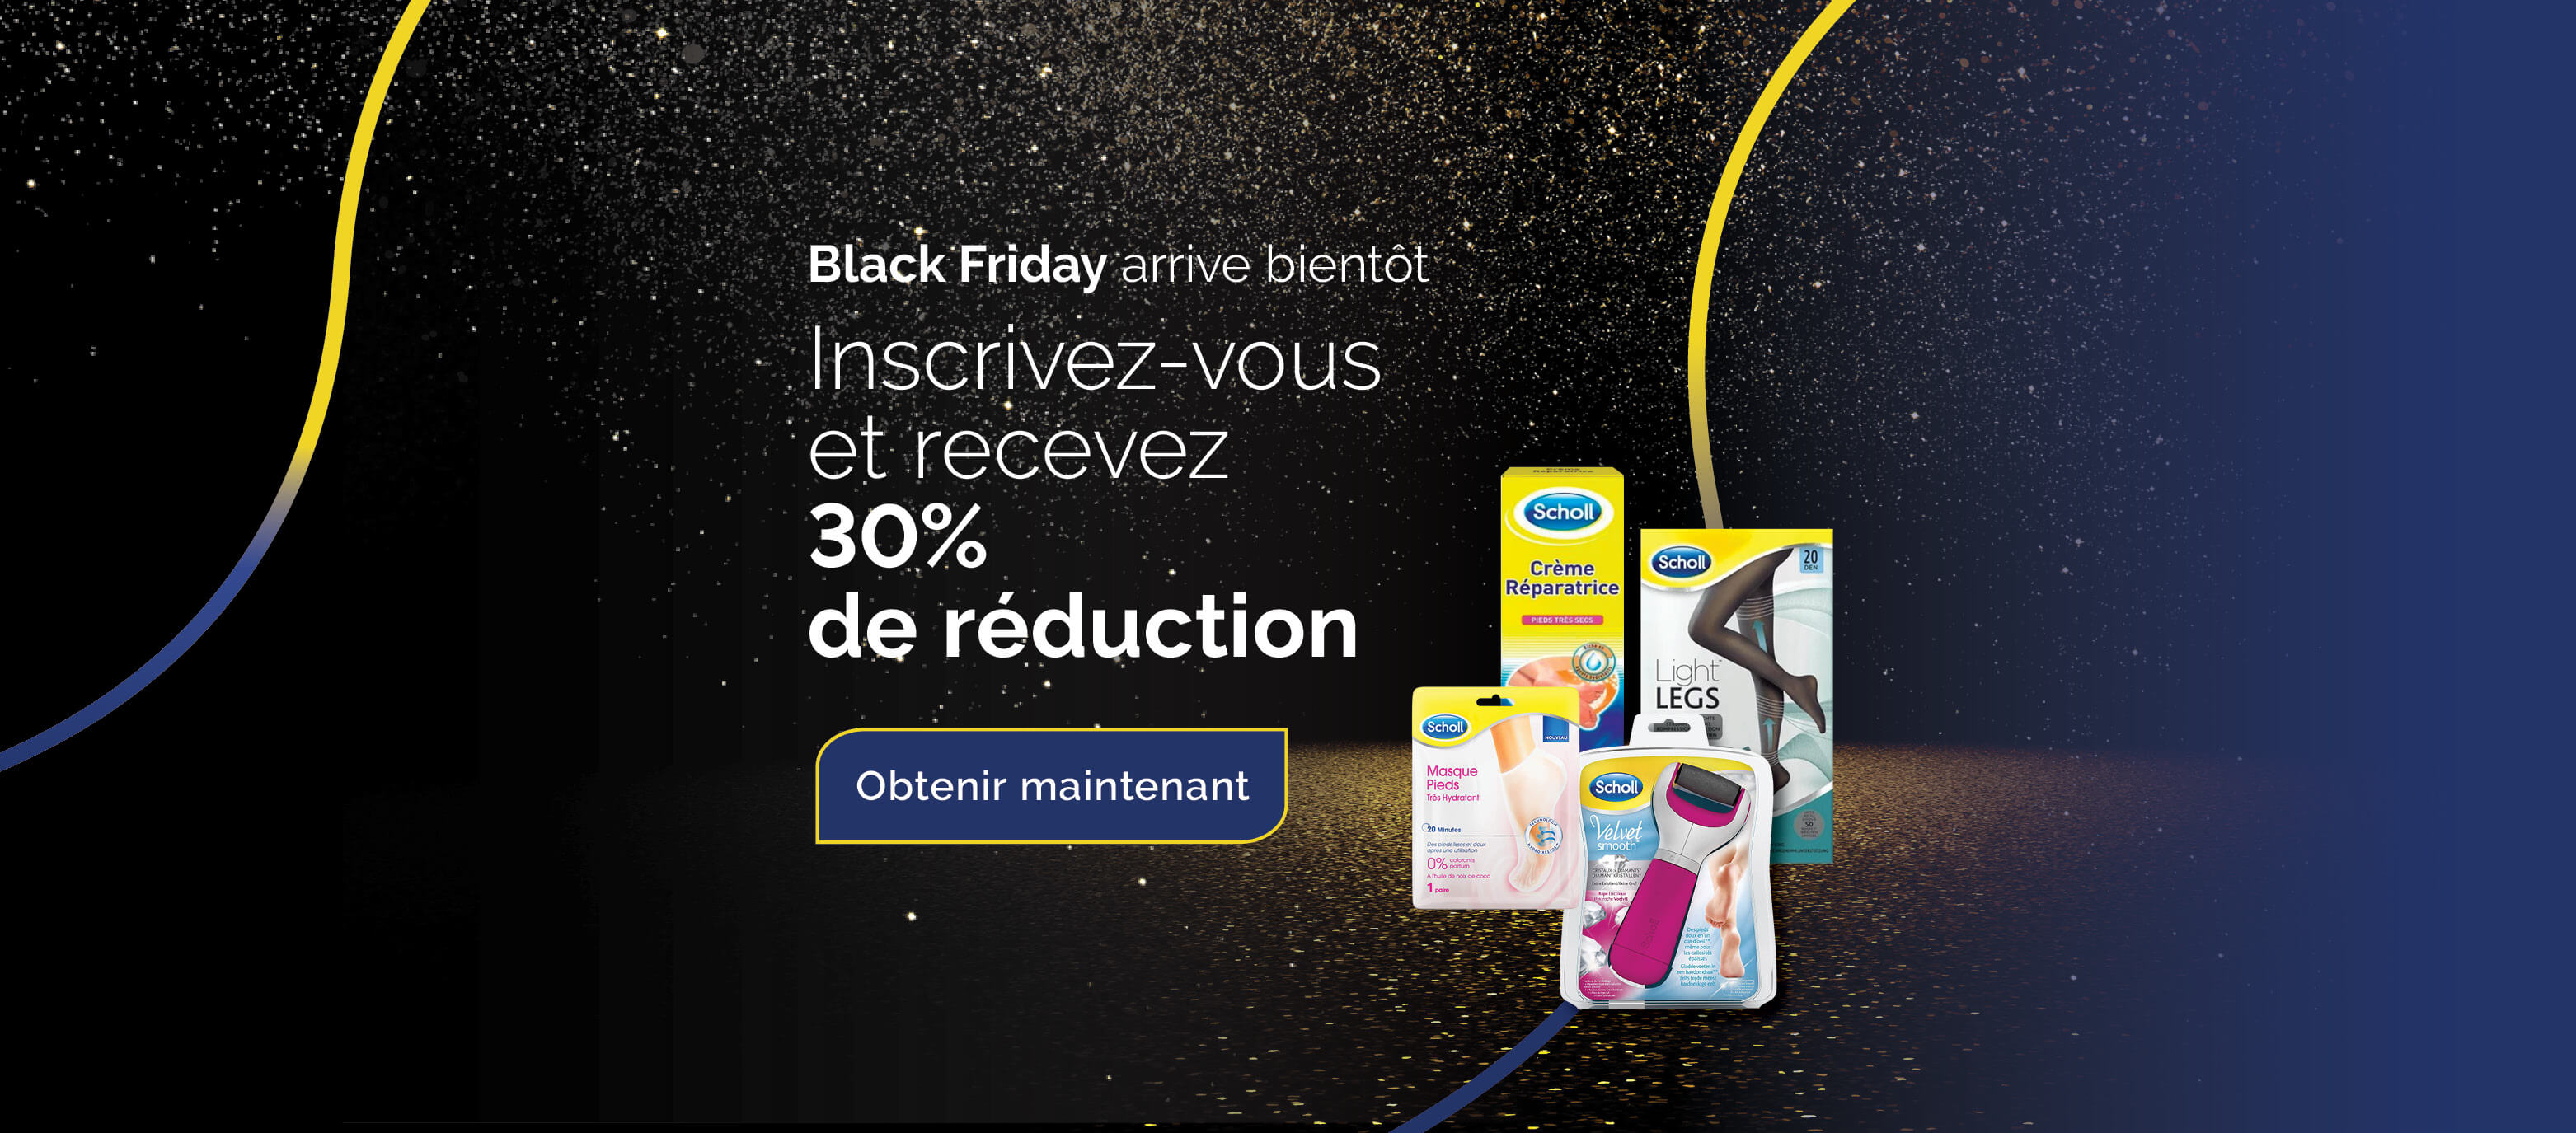 Black Friday arrive bientôt